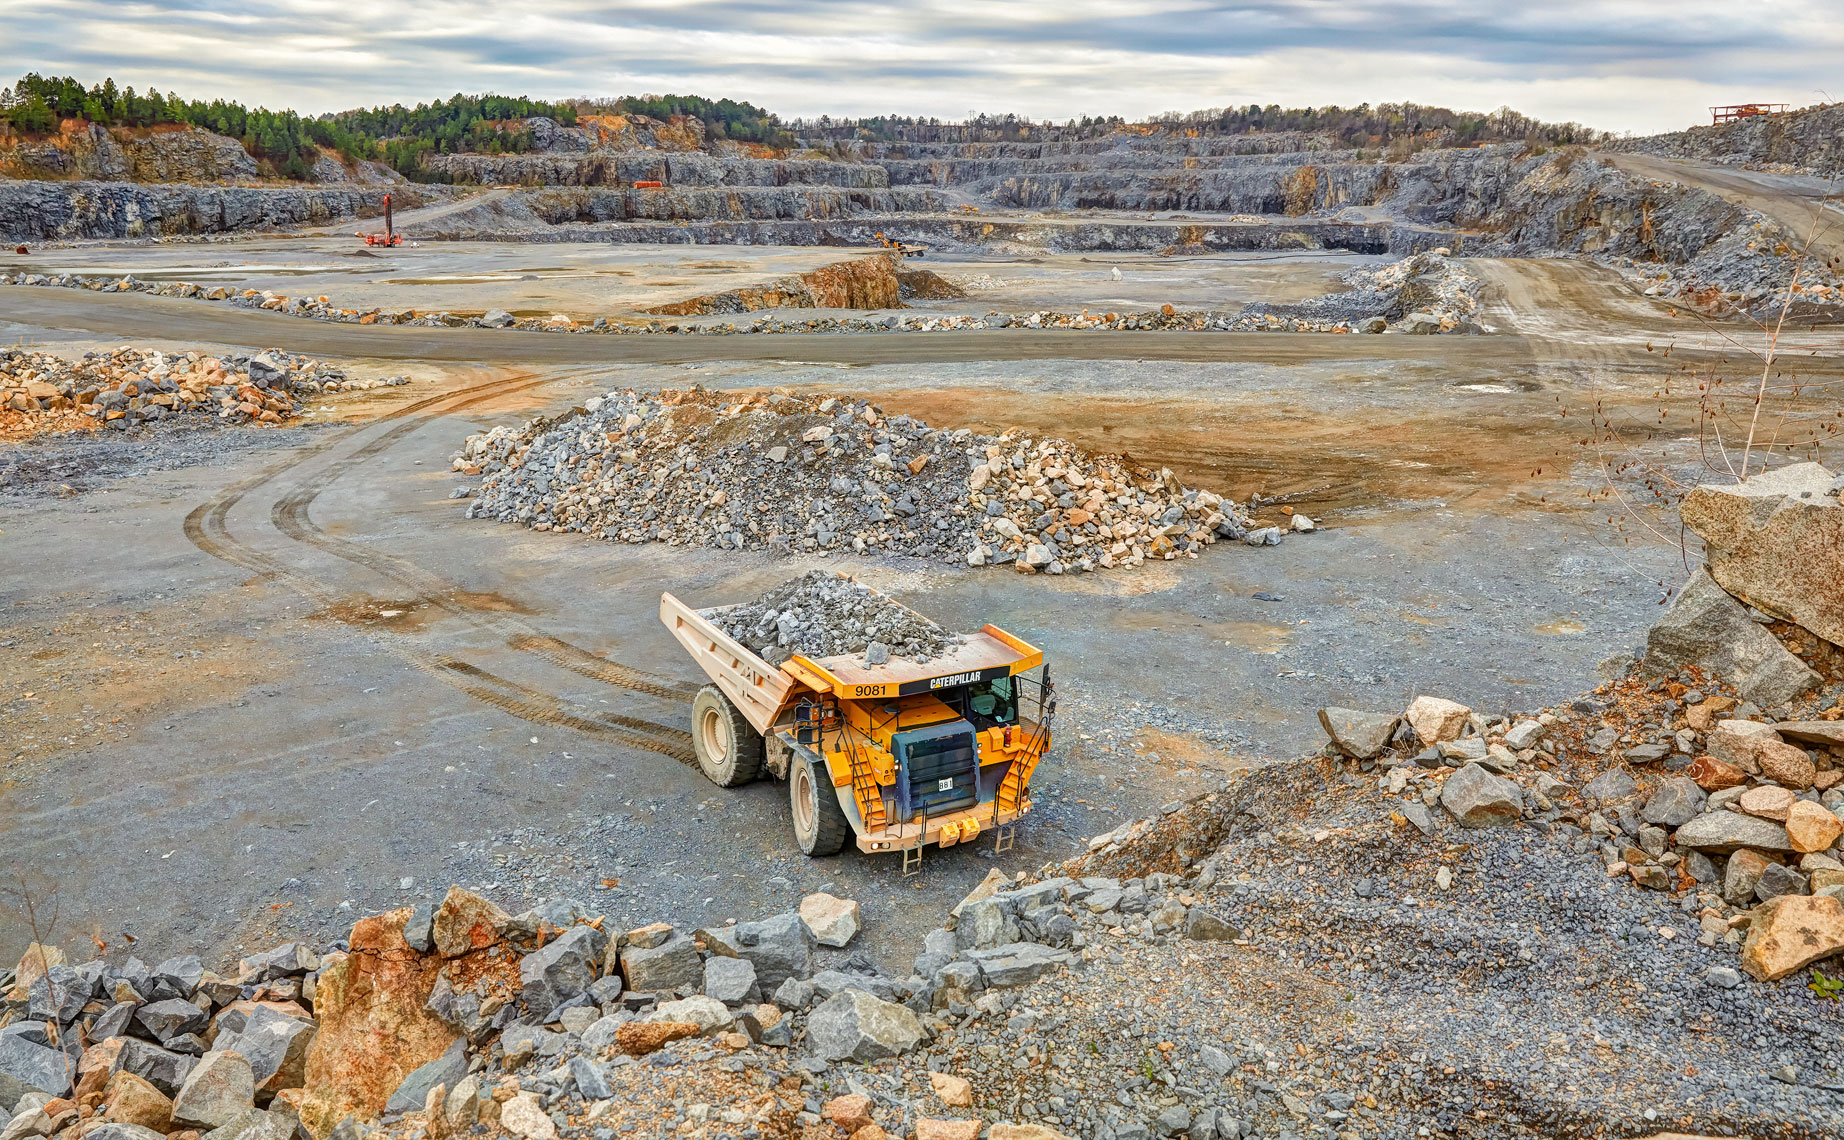 3M Ark Quarry/industrial location photography